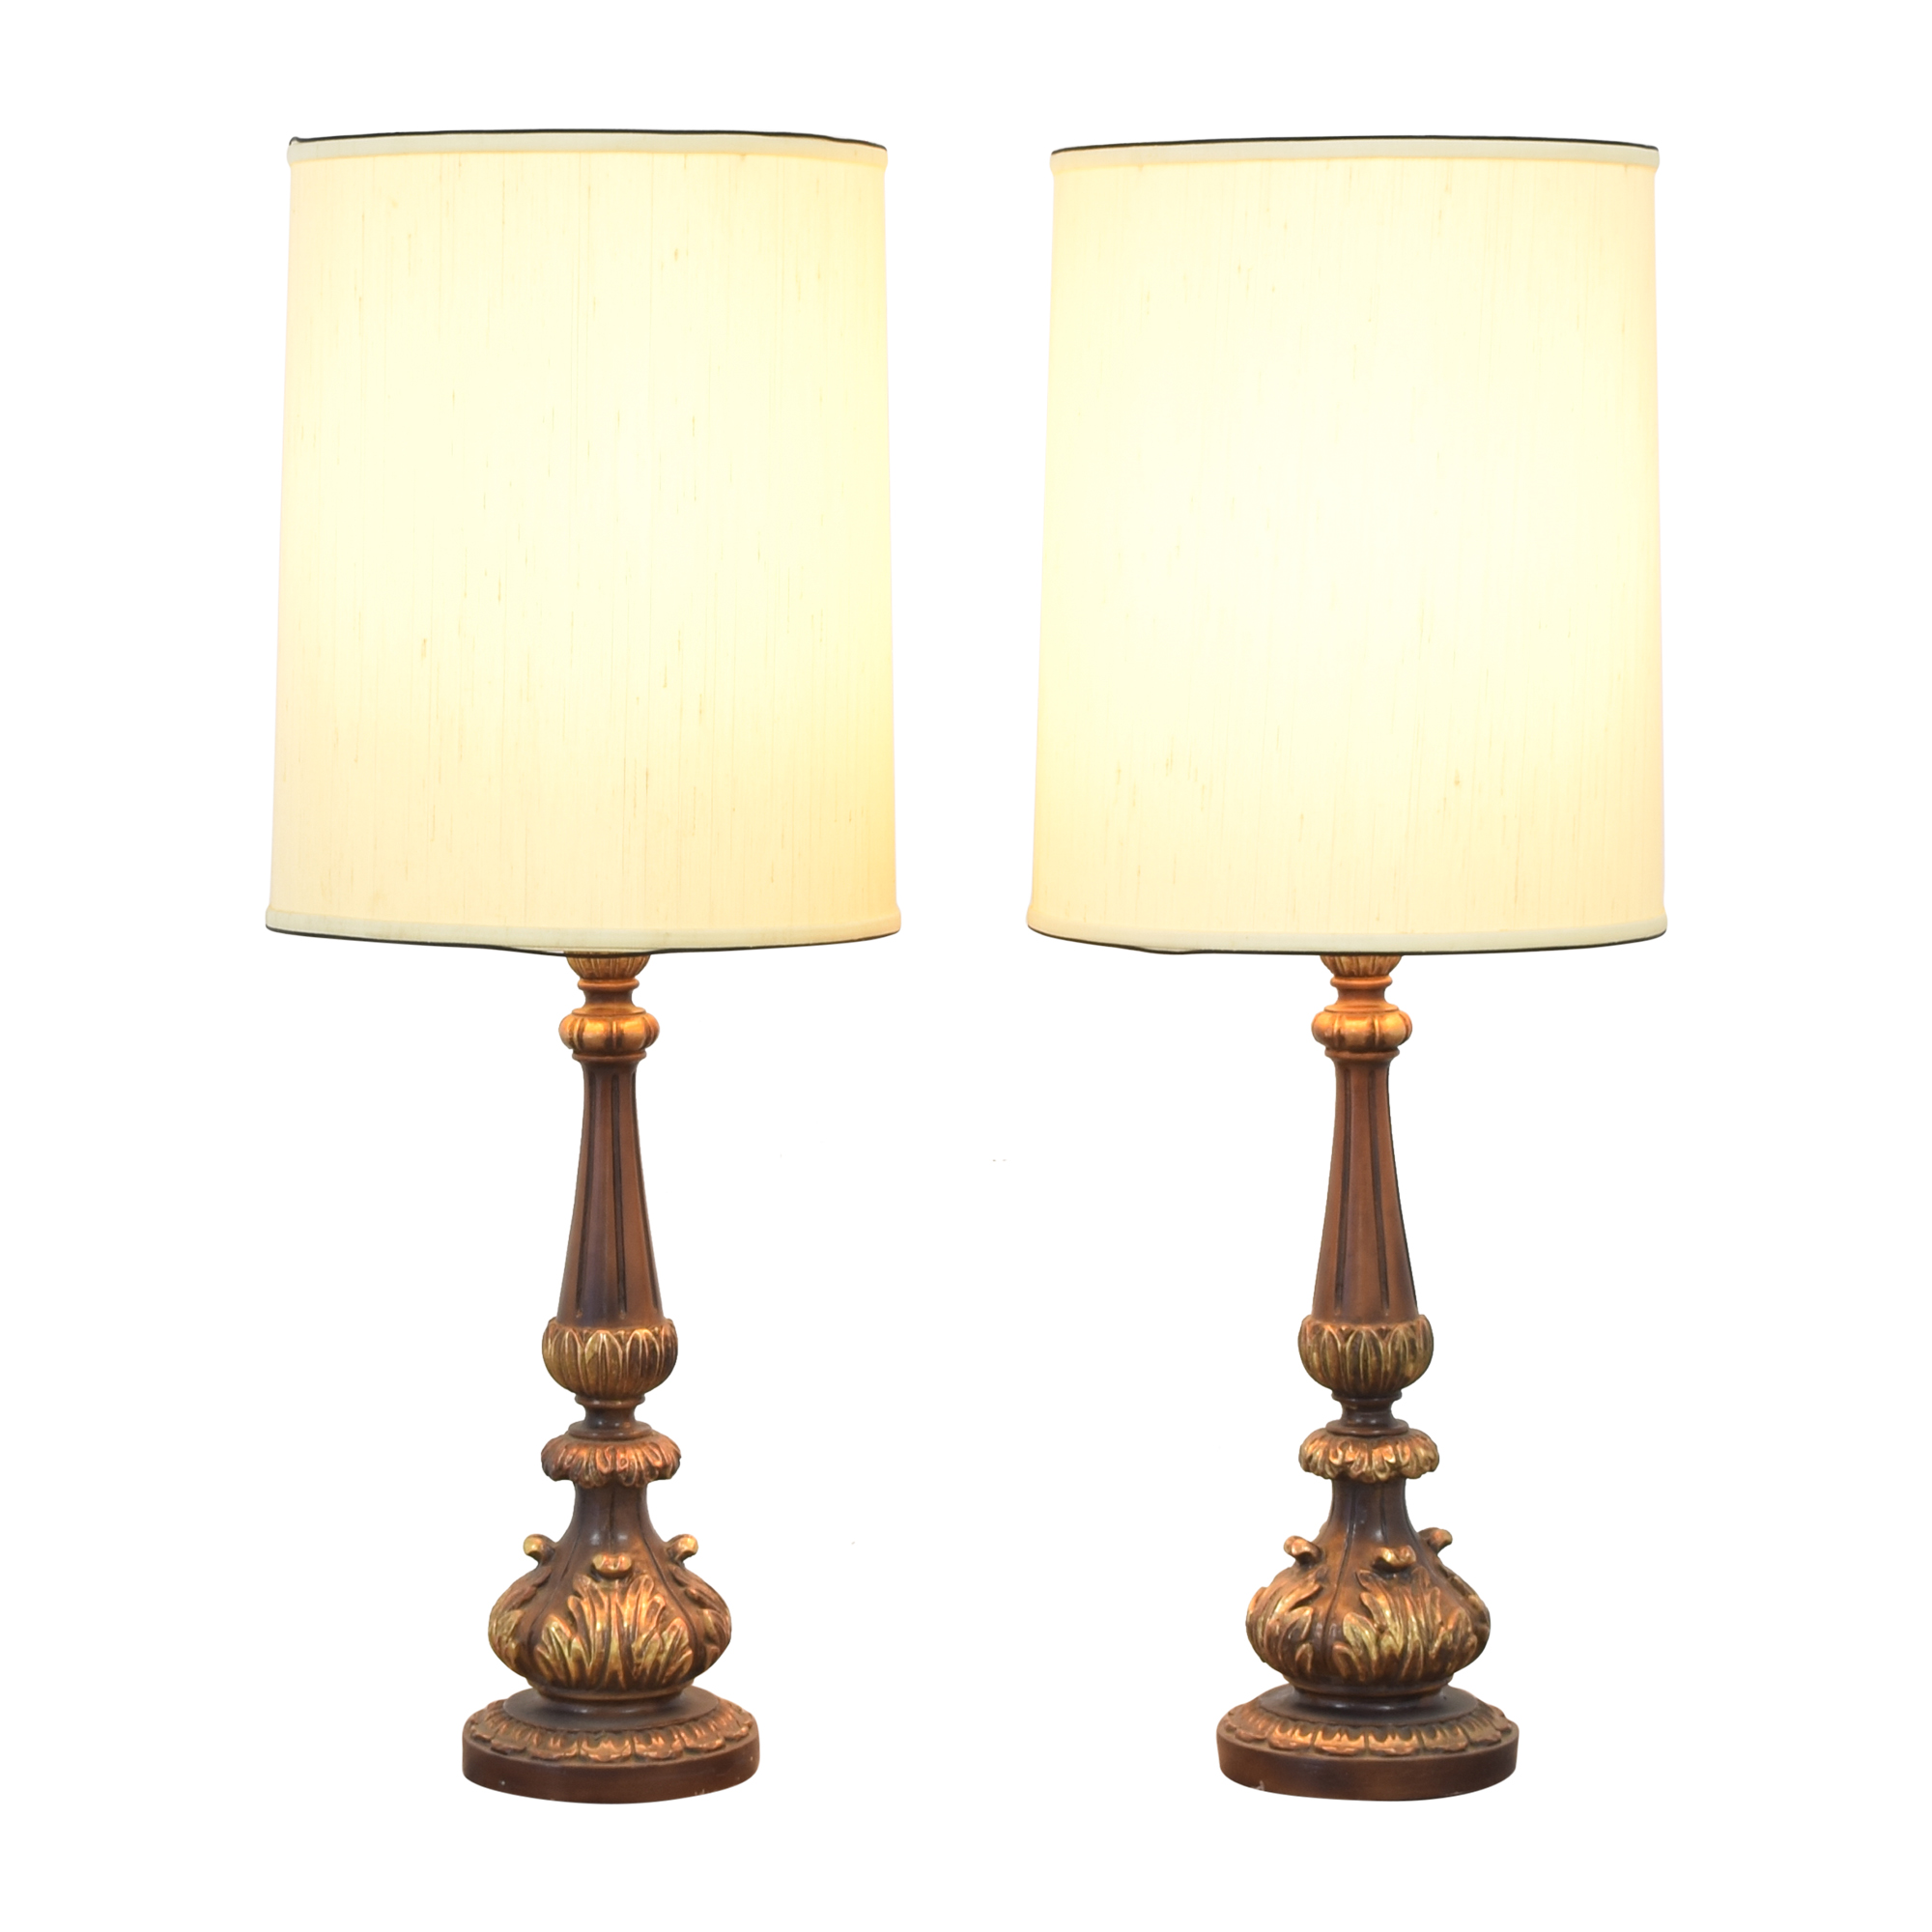 Tall Barrel Shaded Mid-Century Table Lamps for sale